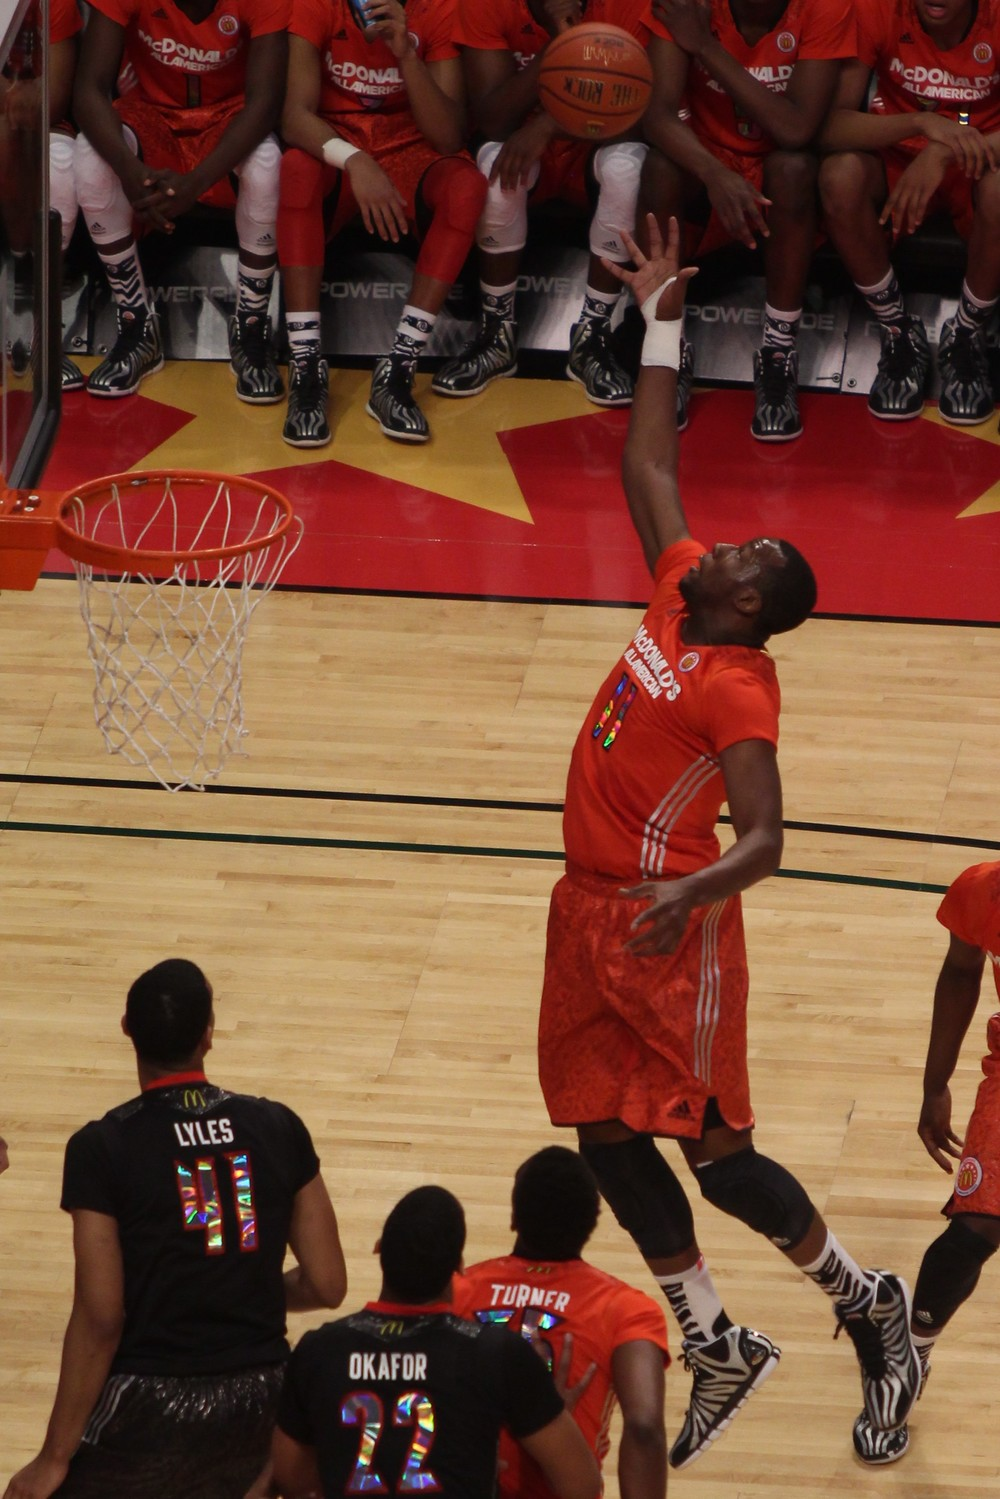 Cliff Alexander rebounding in the 2014 McDonald's All-American Game